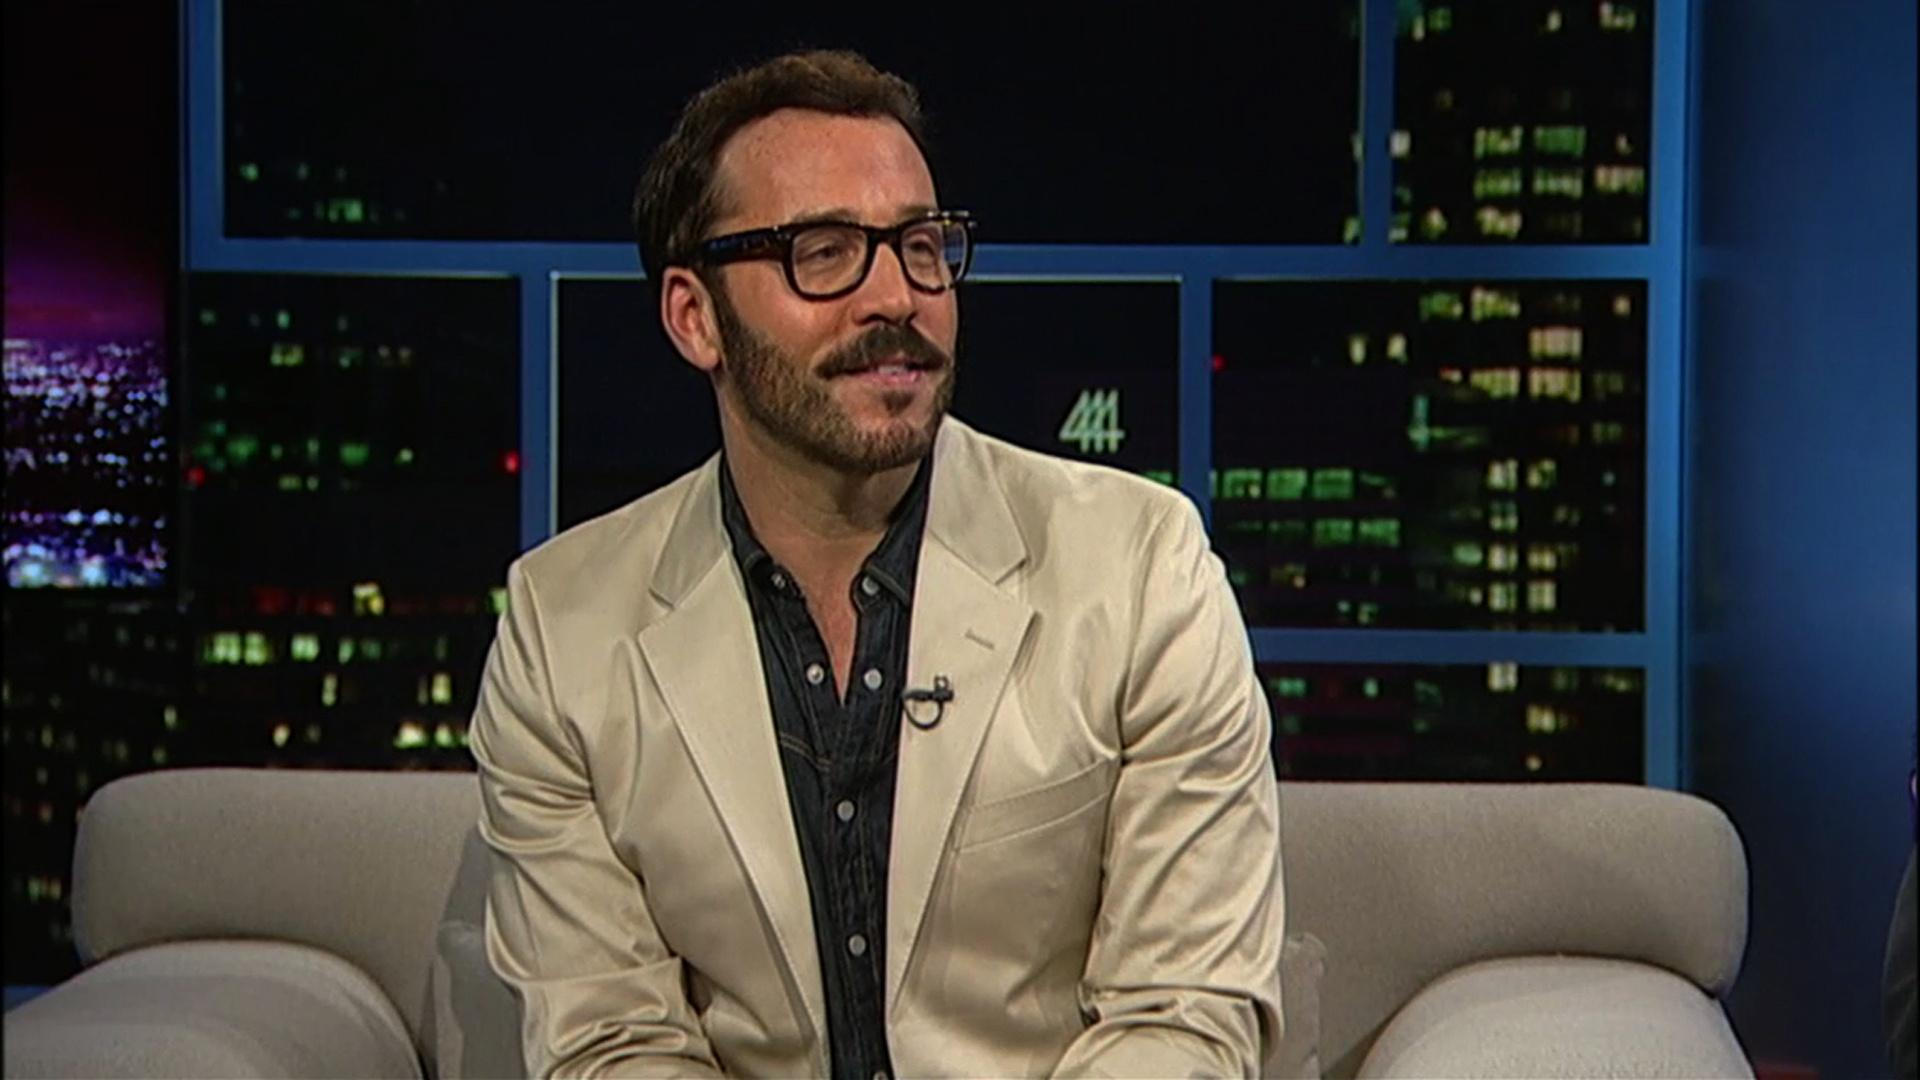 Actor Jeremy Piven image